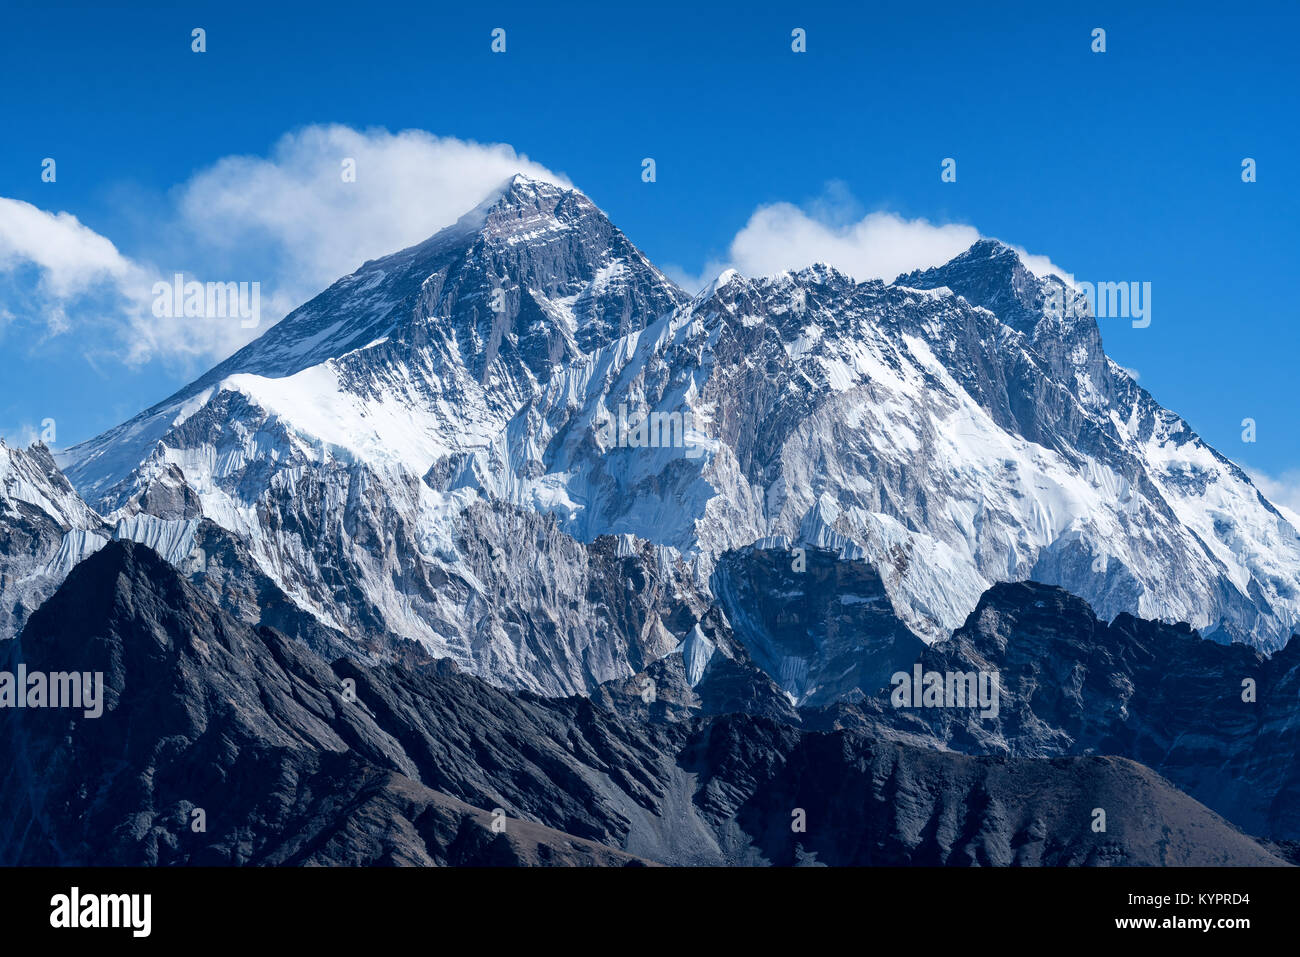 Everest, Lhotse and Nuptse mountains in Nepal - Stock Image